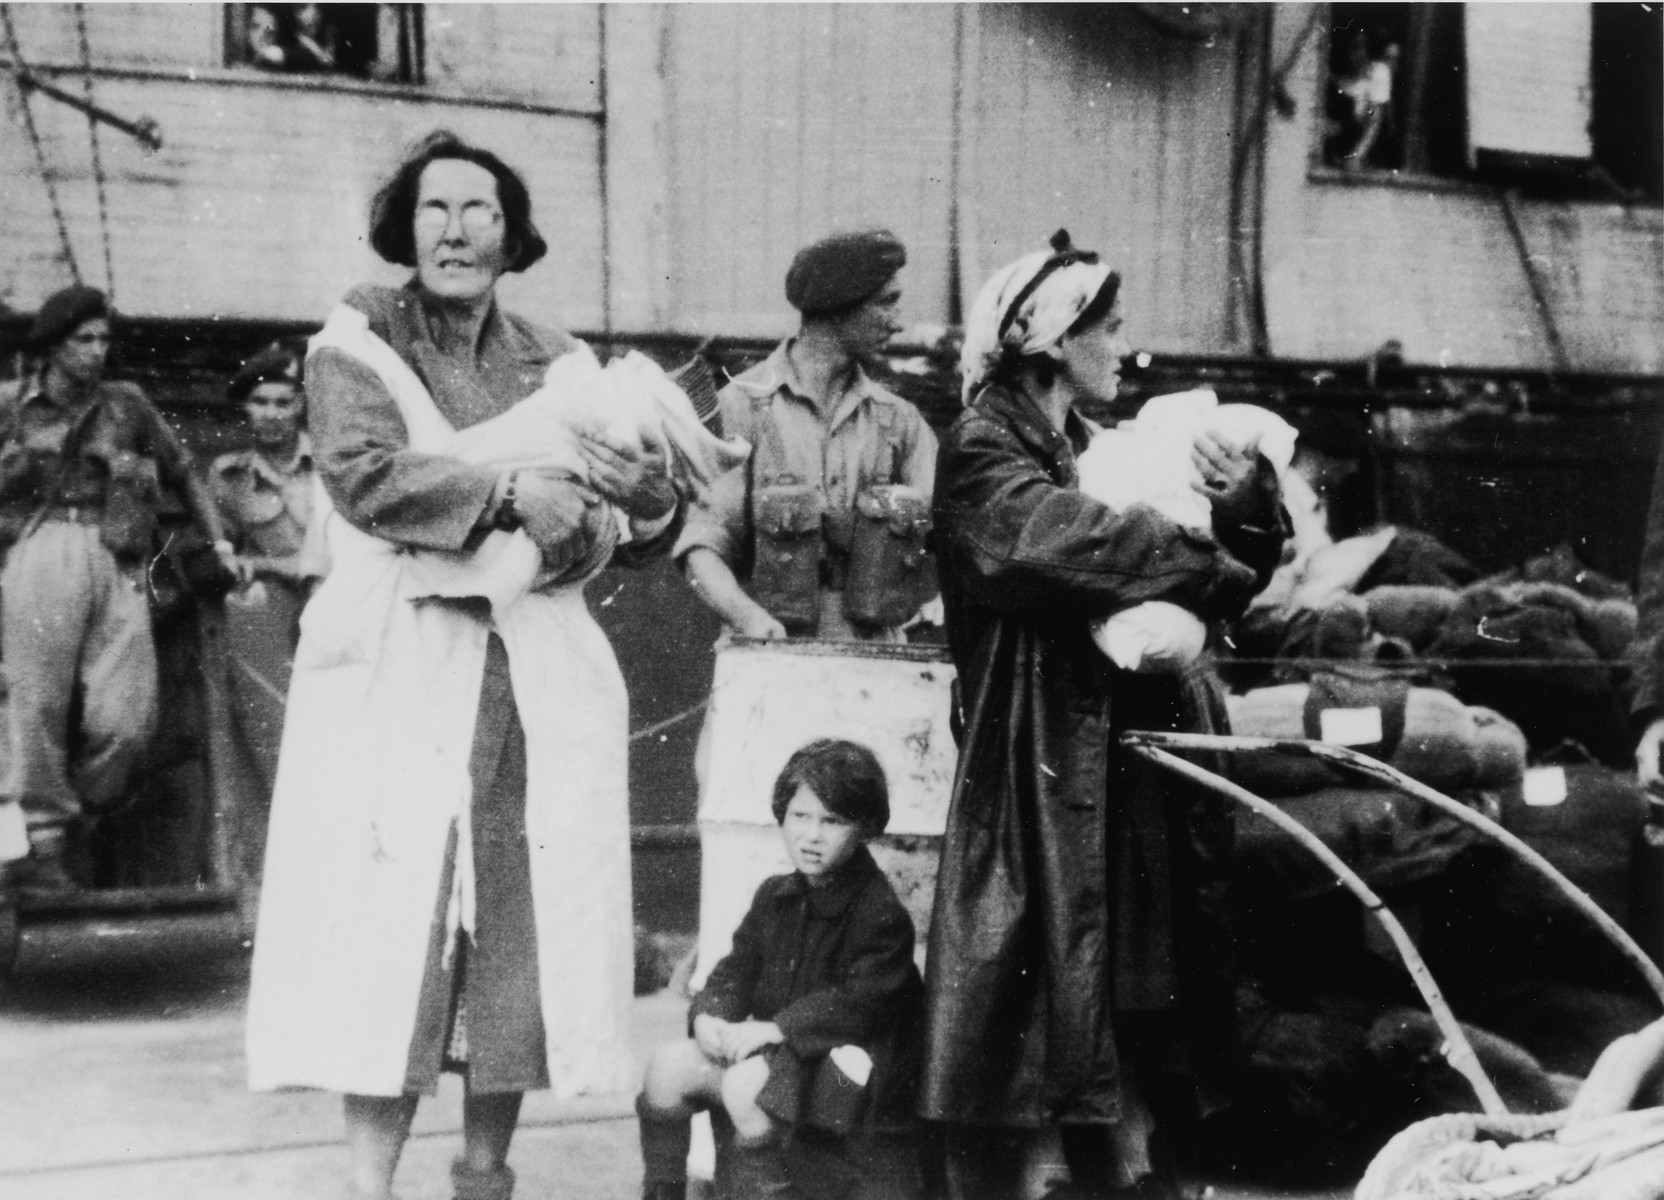 Two female passengers of the Exodus 1947 wait on the dock in Haifa holding infants who were born during the voyage.    The woman at the left is the grandmother of the infant she holds.  The child's mother died in childbirth.